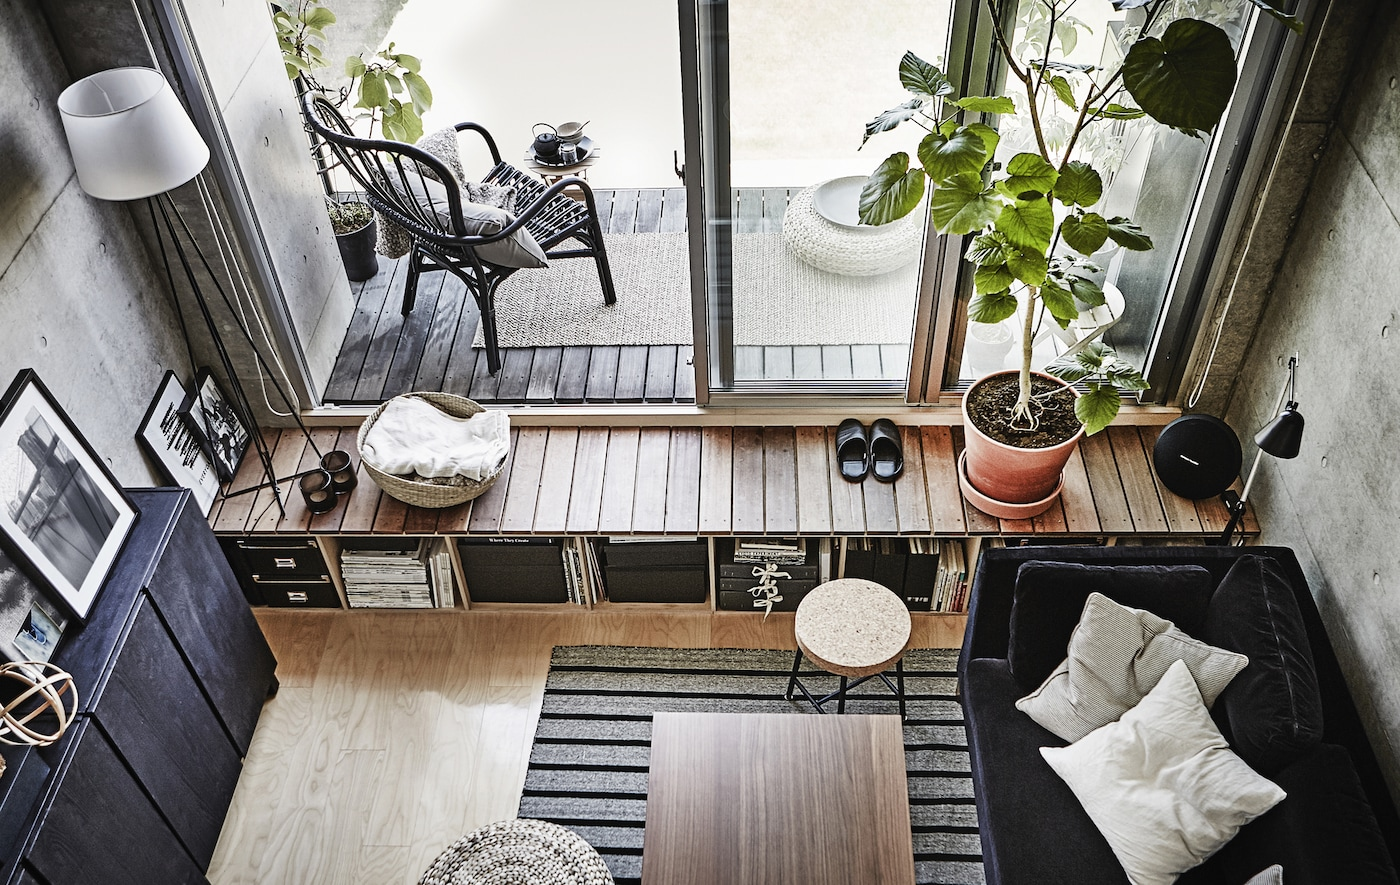 A Tour Of A 25m2 Urban Apartment In Japan Ikea Switzerland